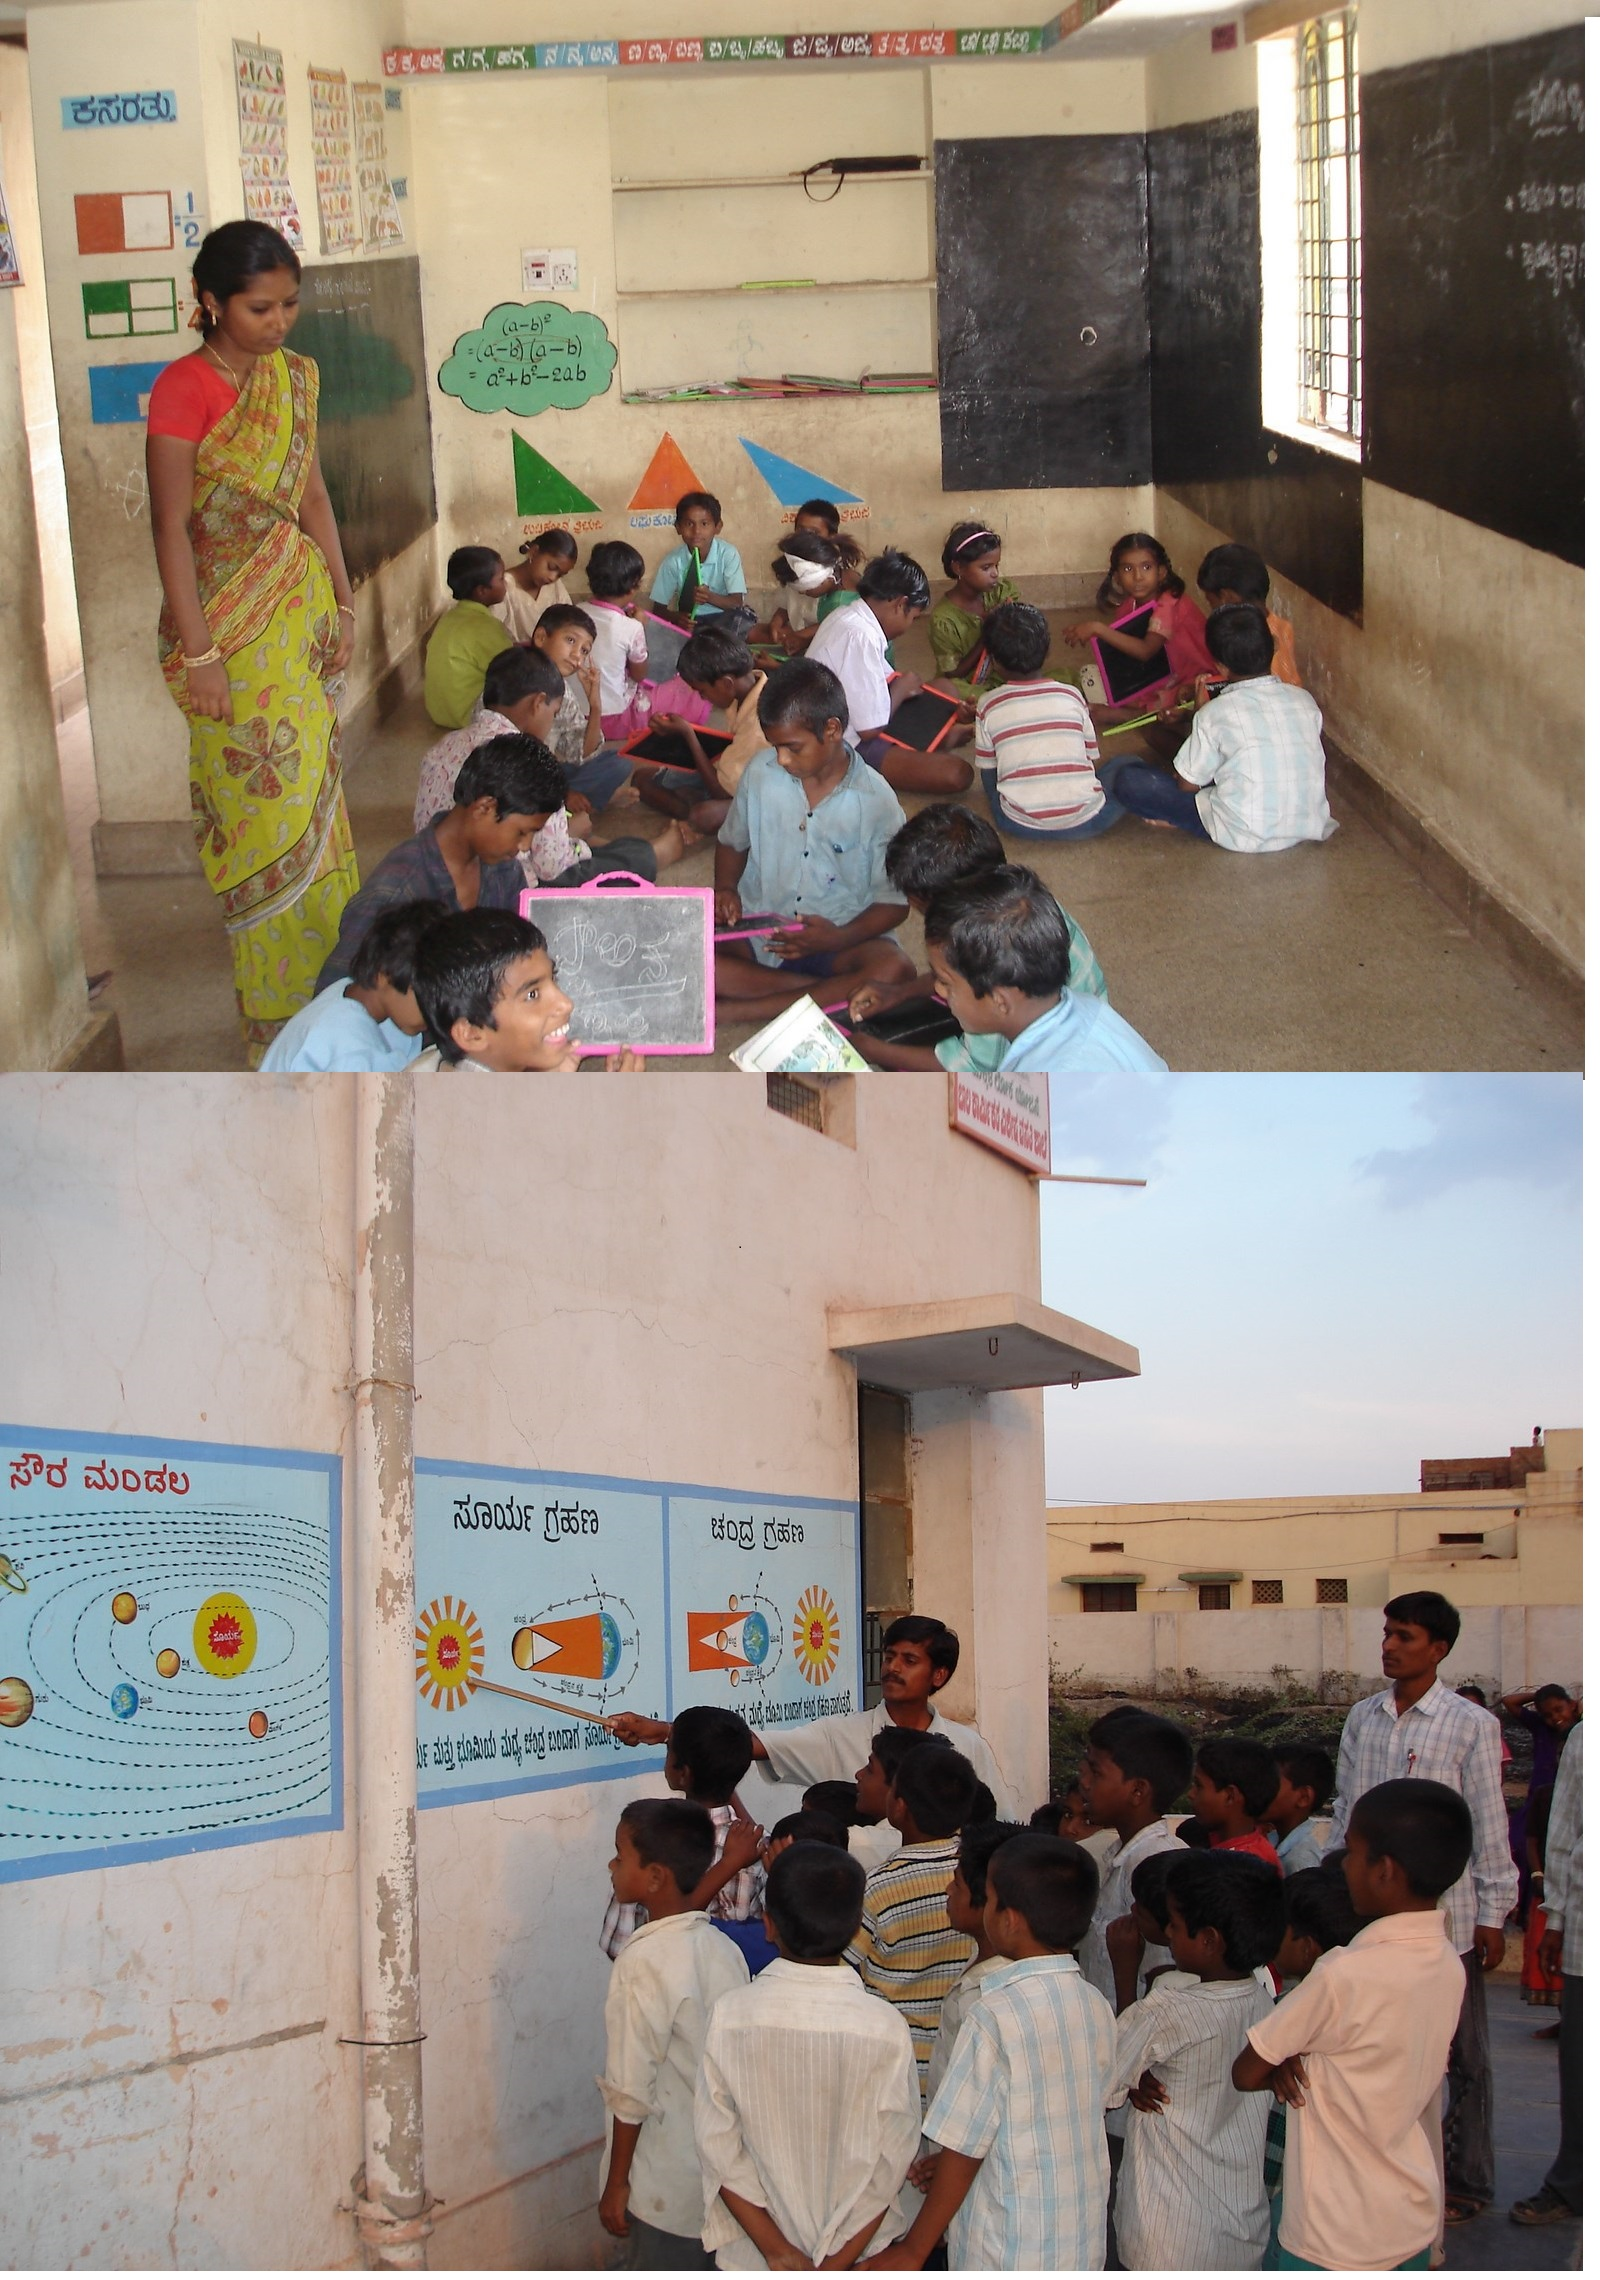 Children-in-Group-Work-Learning